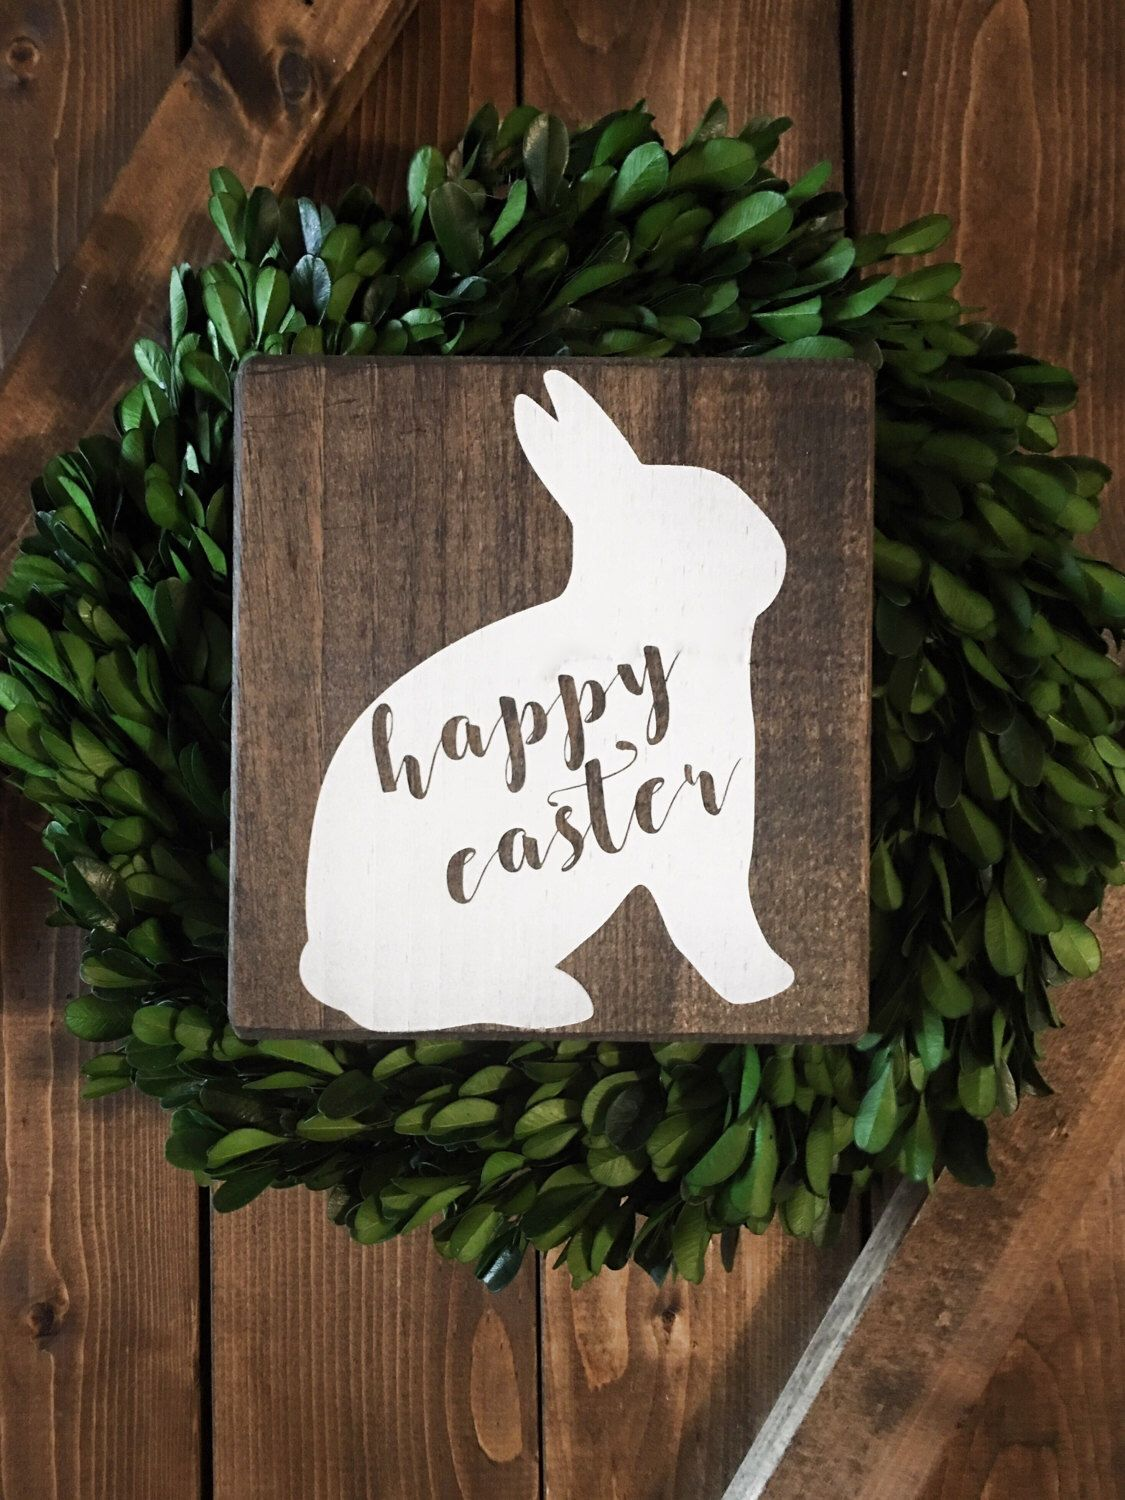 Happy Easter Wood Sign Farmhouse Style Dark Stain Rustic Neutral